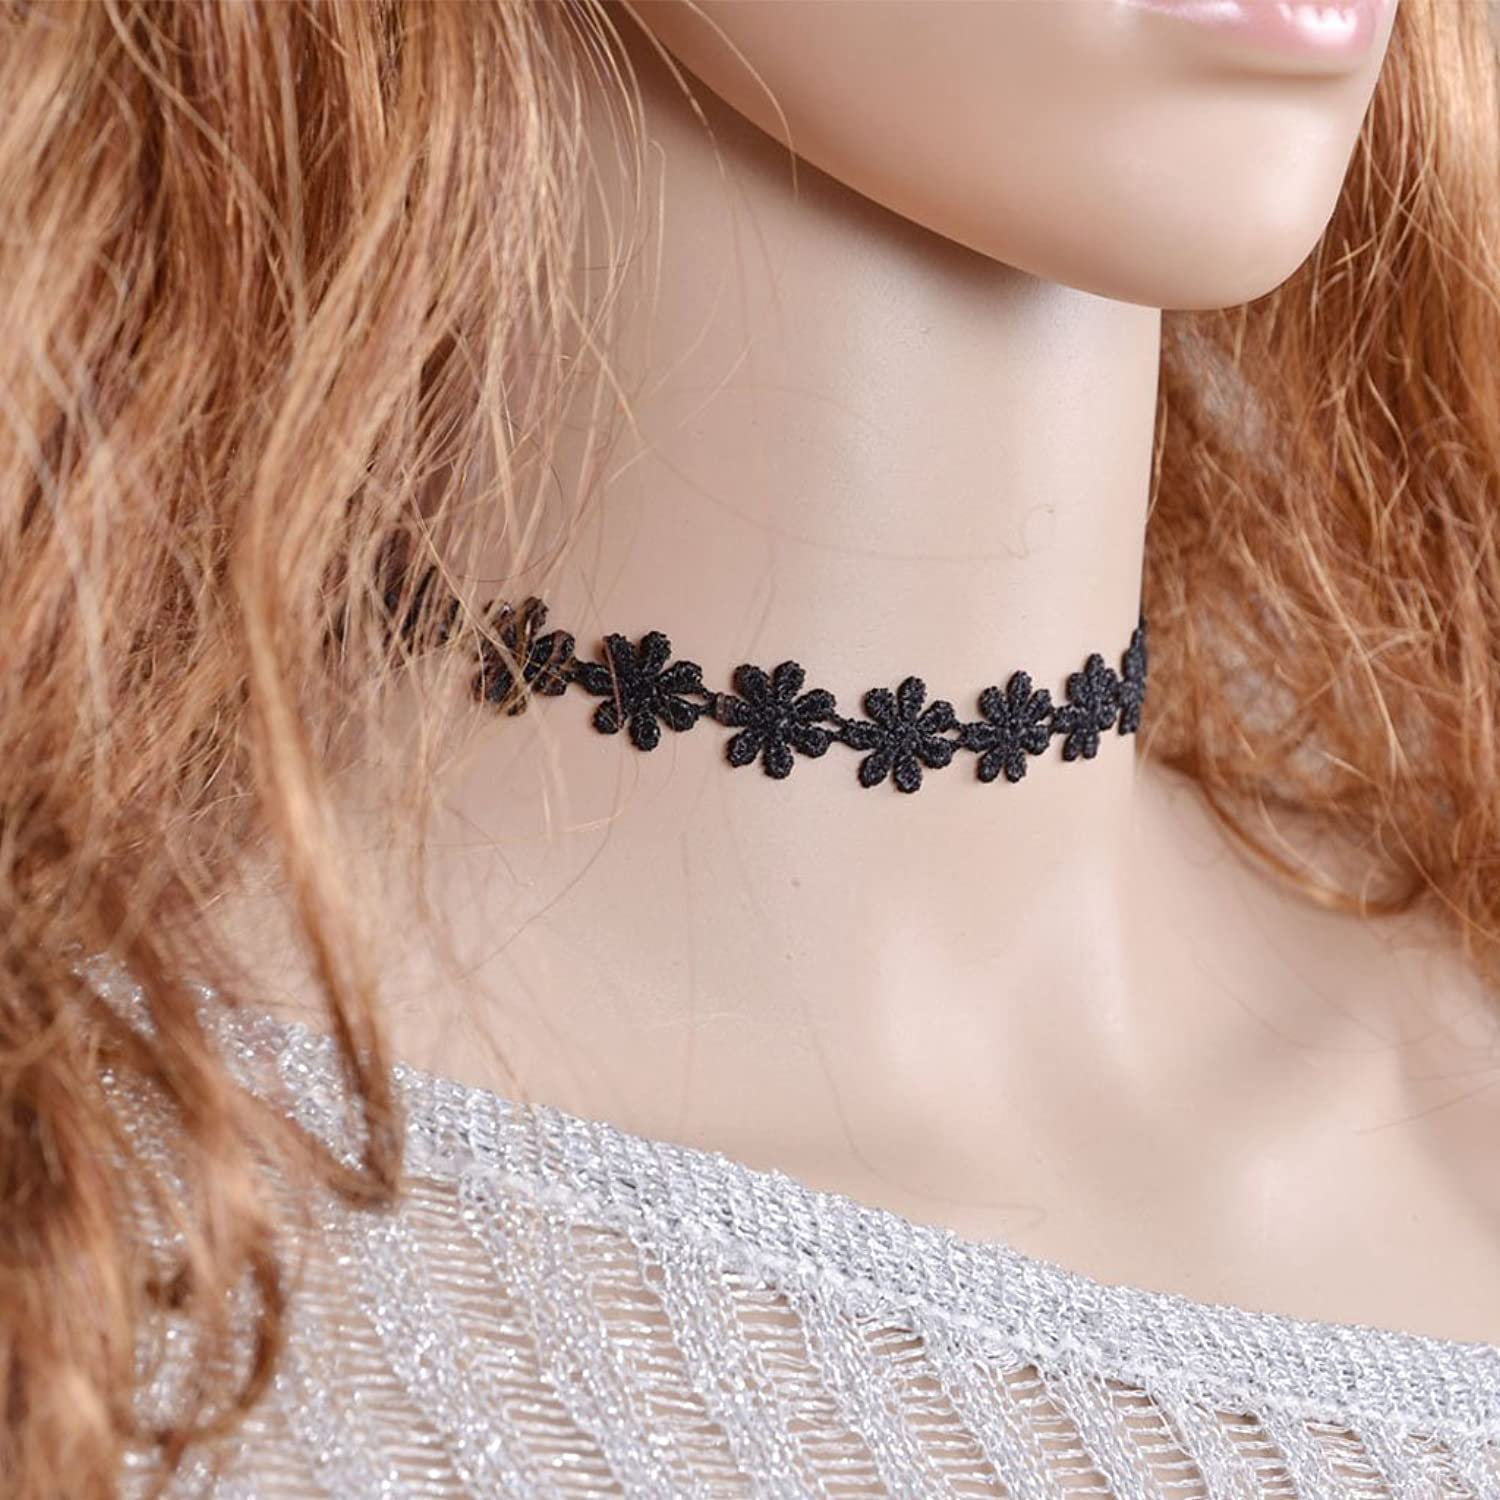 christmas choker concave dazzling hot diamond fashion collar simple visual jewelry neck item imitation surface necklace bright